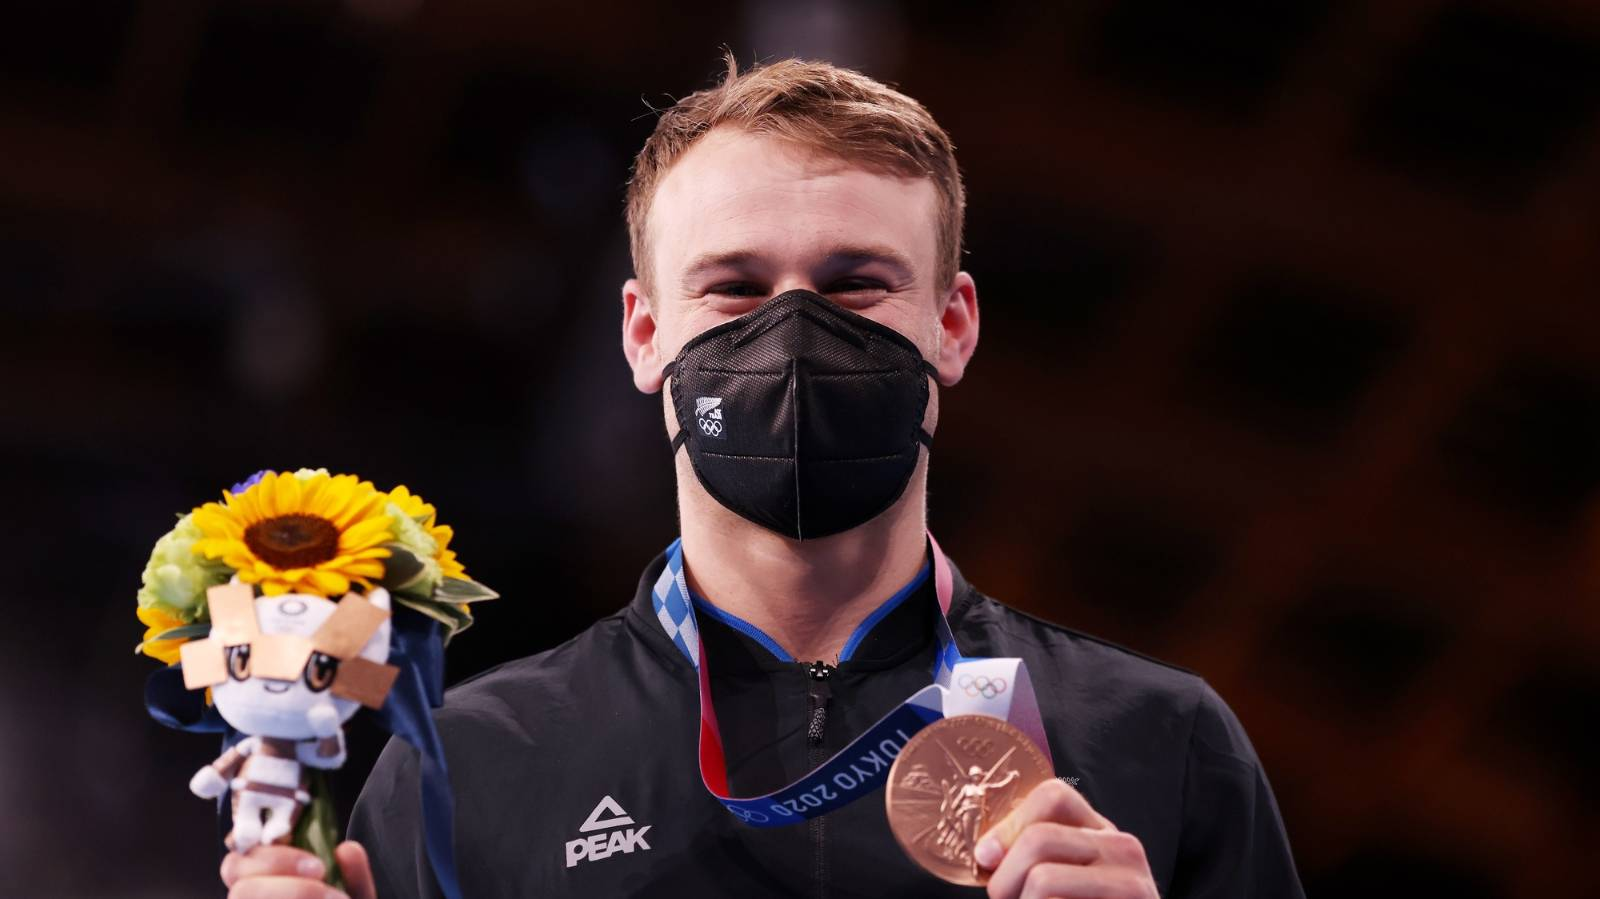 Calm sleep paves way for Dylan Schmidt's Olympic bronze medal